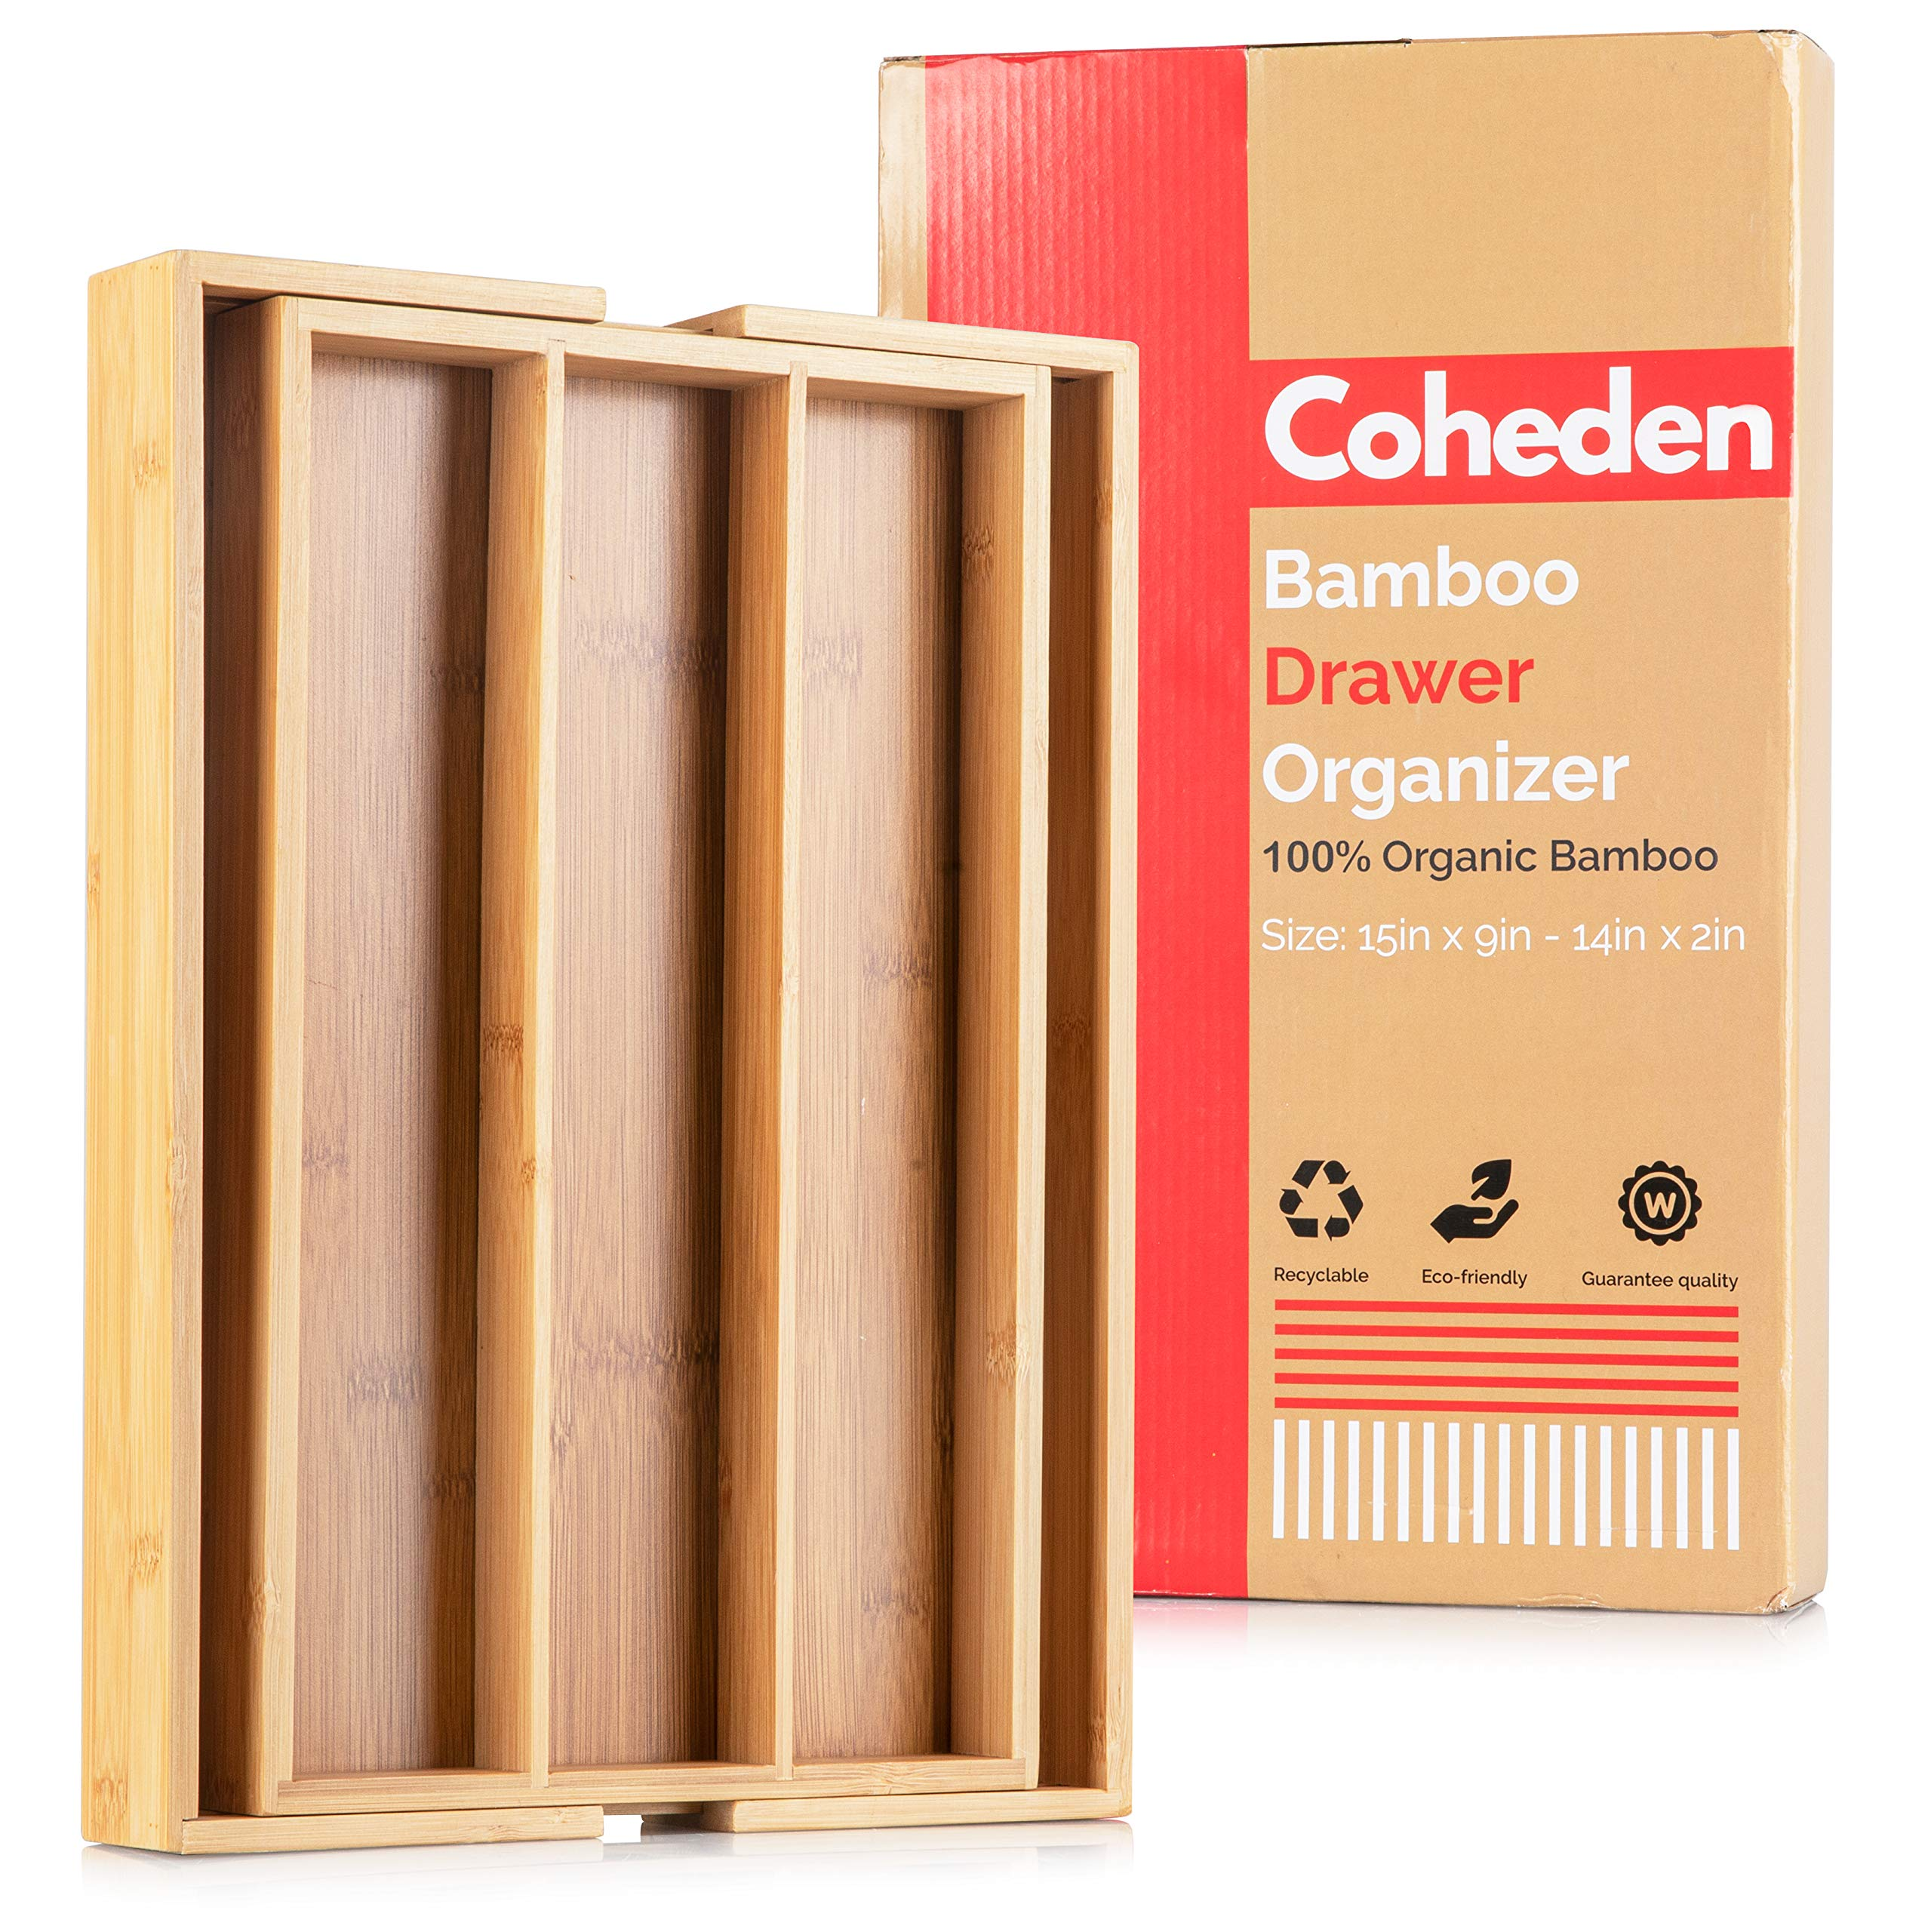 Bamboo Expandable Drawer Organizer by Coheden - Premium Cutlery and Utensil Tray - Multifunctional Organizer Fits With All Drawer Sizes - Perfect For Kitchen, Bedroom, Bathroom, Office, Desk, etc by Coheden